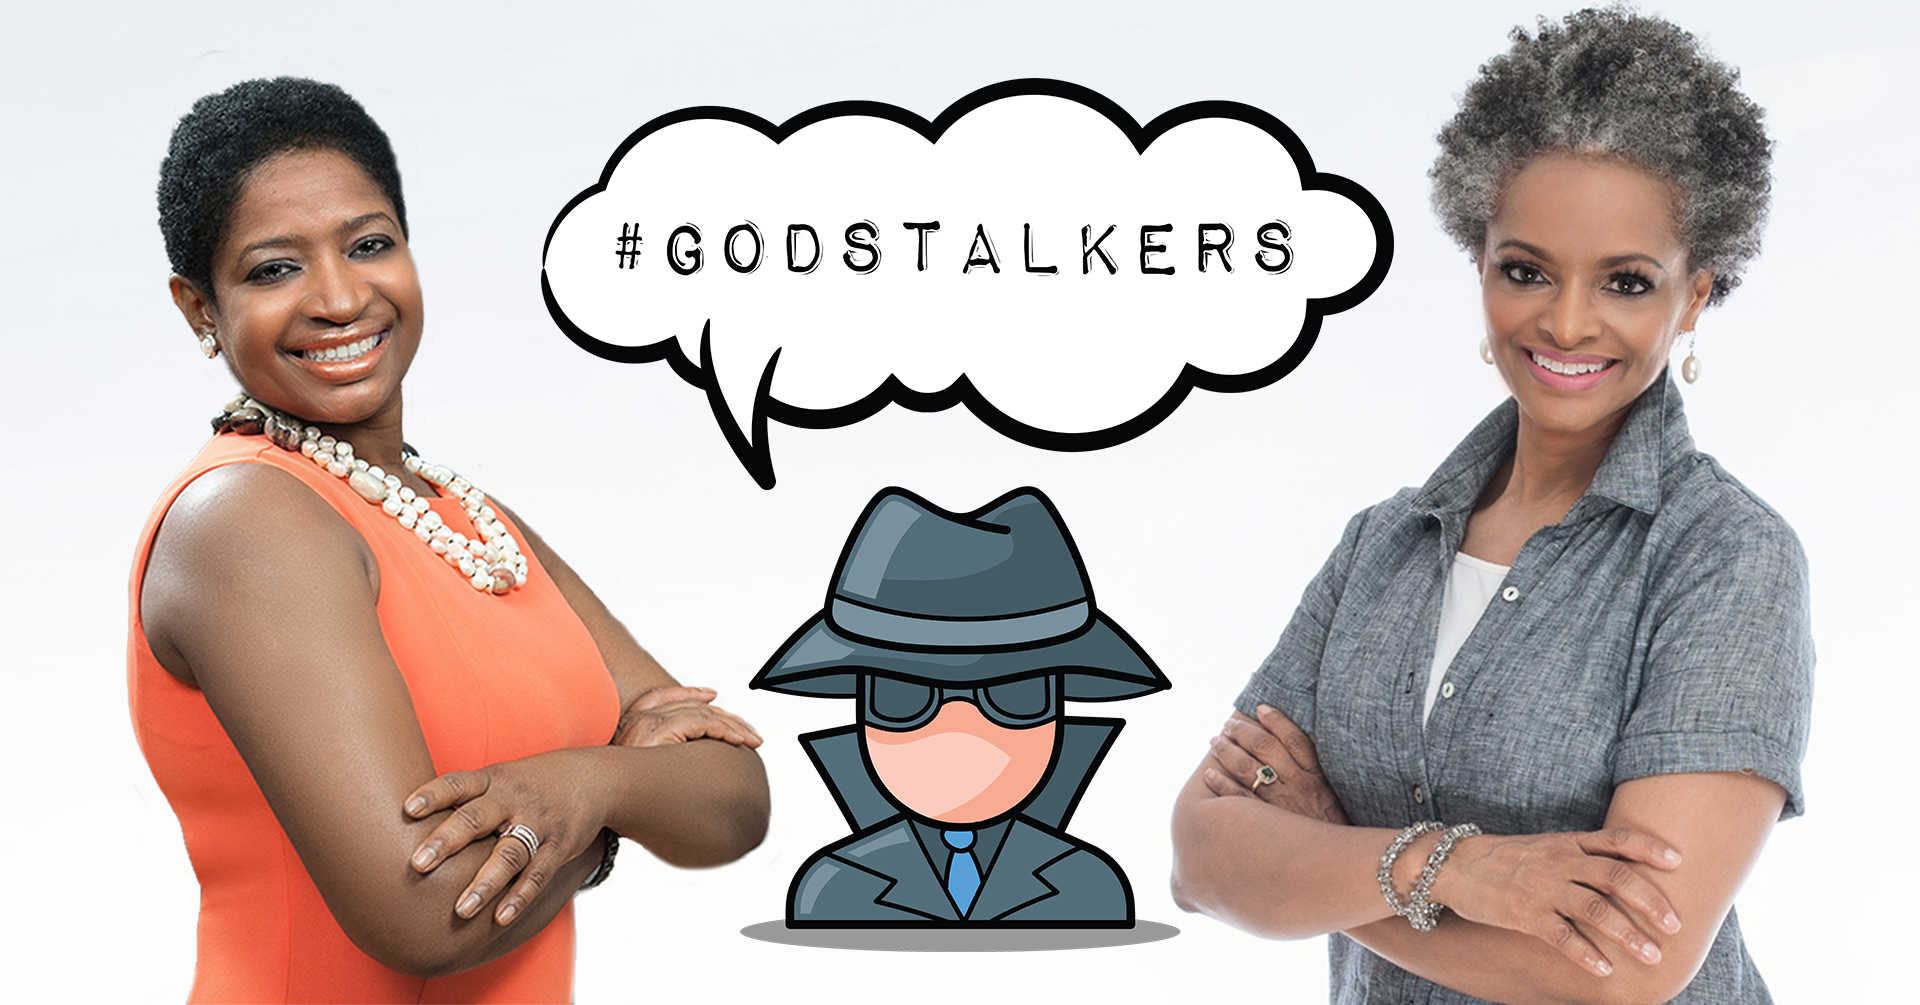 God Stalkers | Kim Whyatt and Gwen Witherspoon